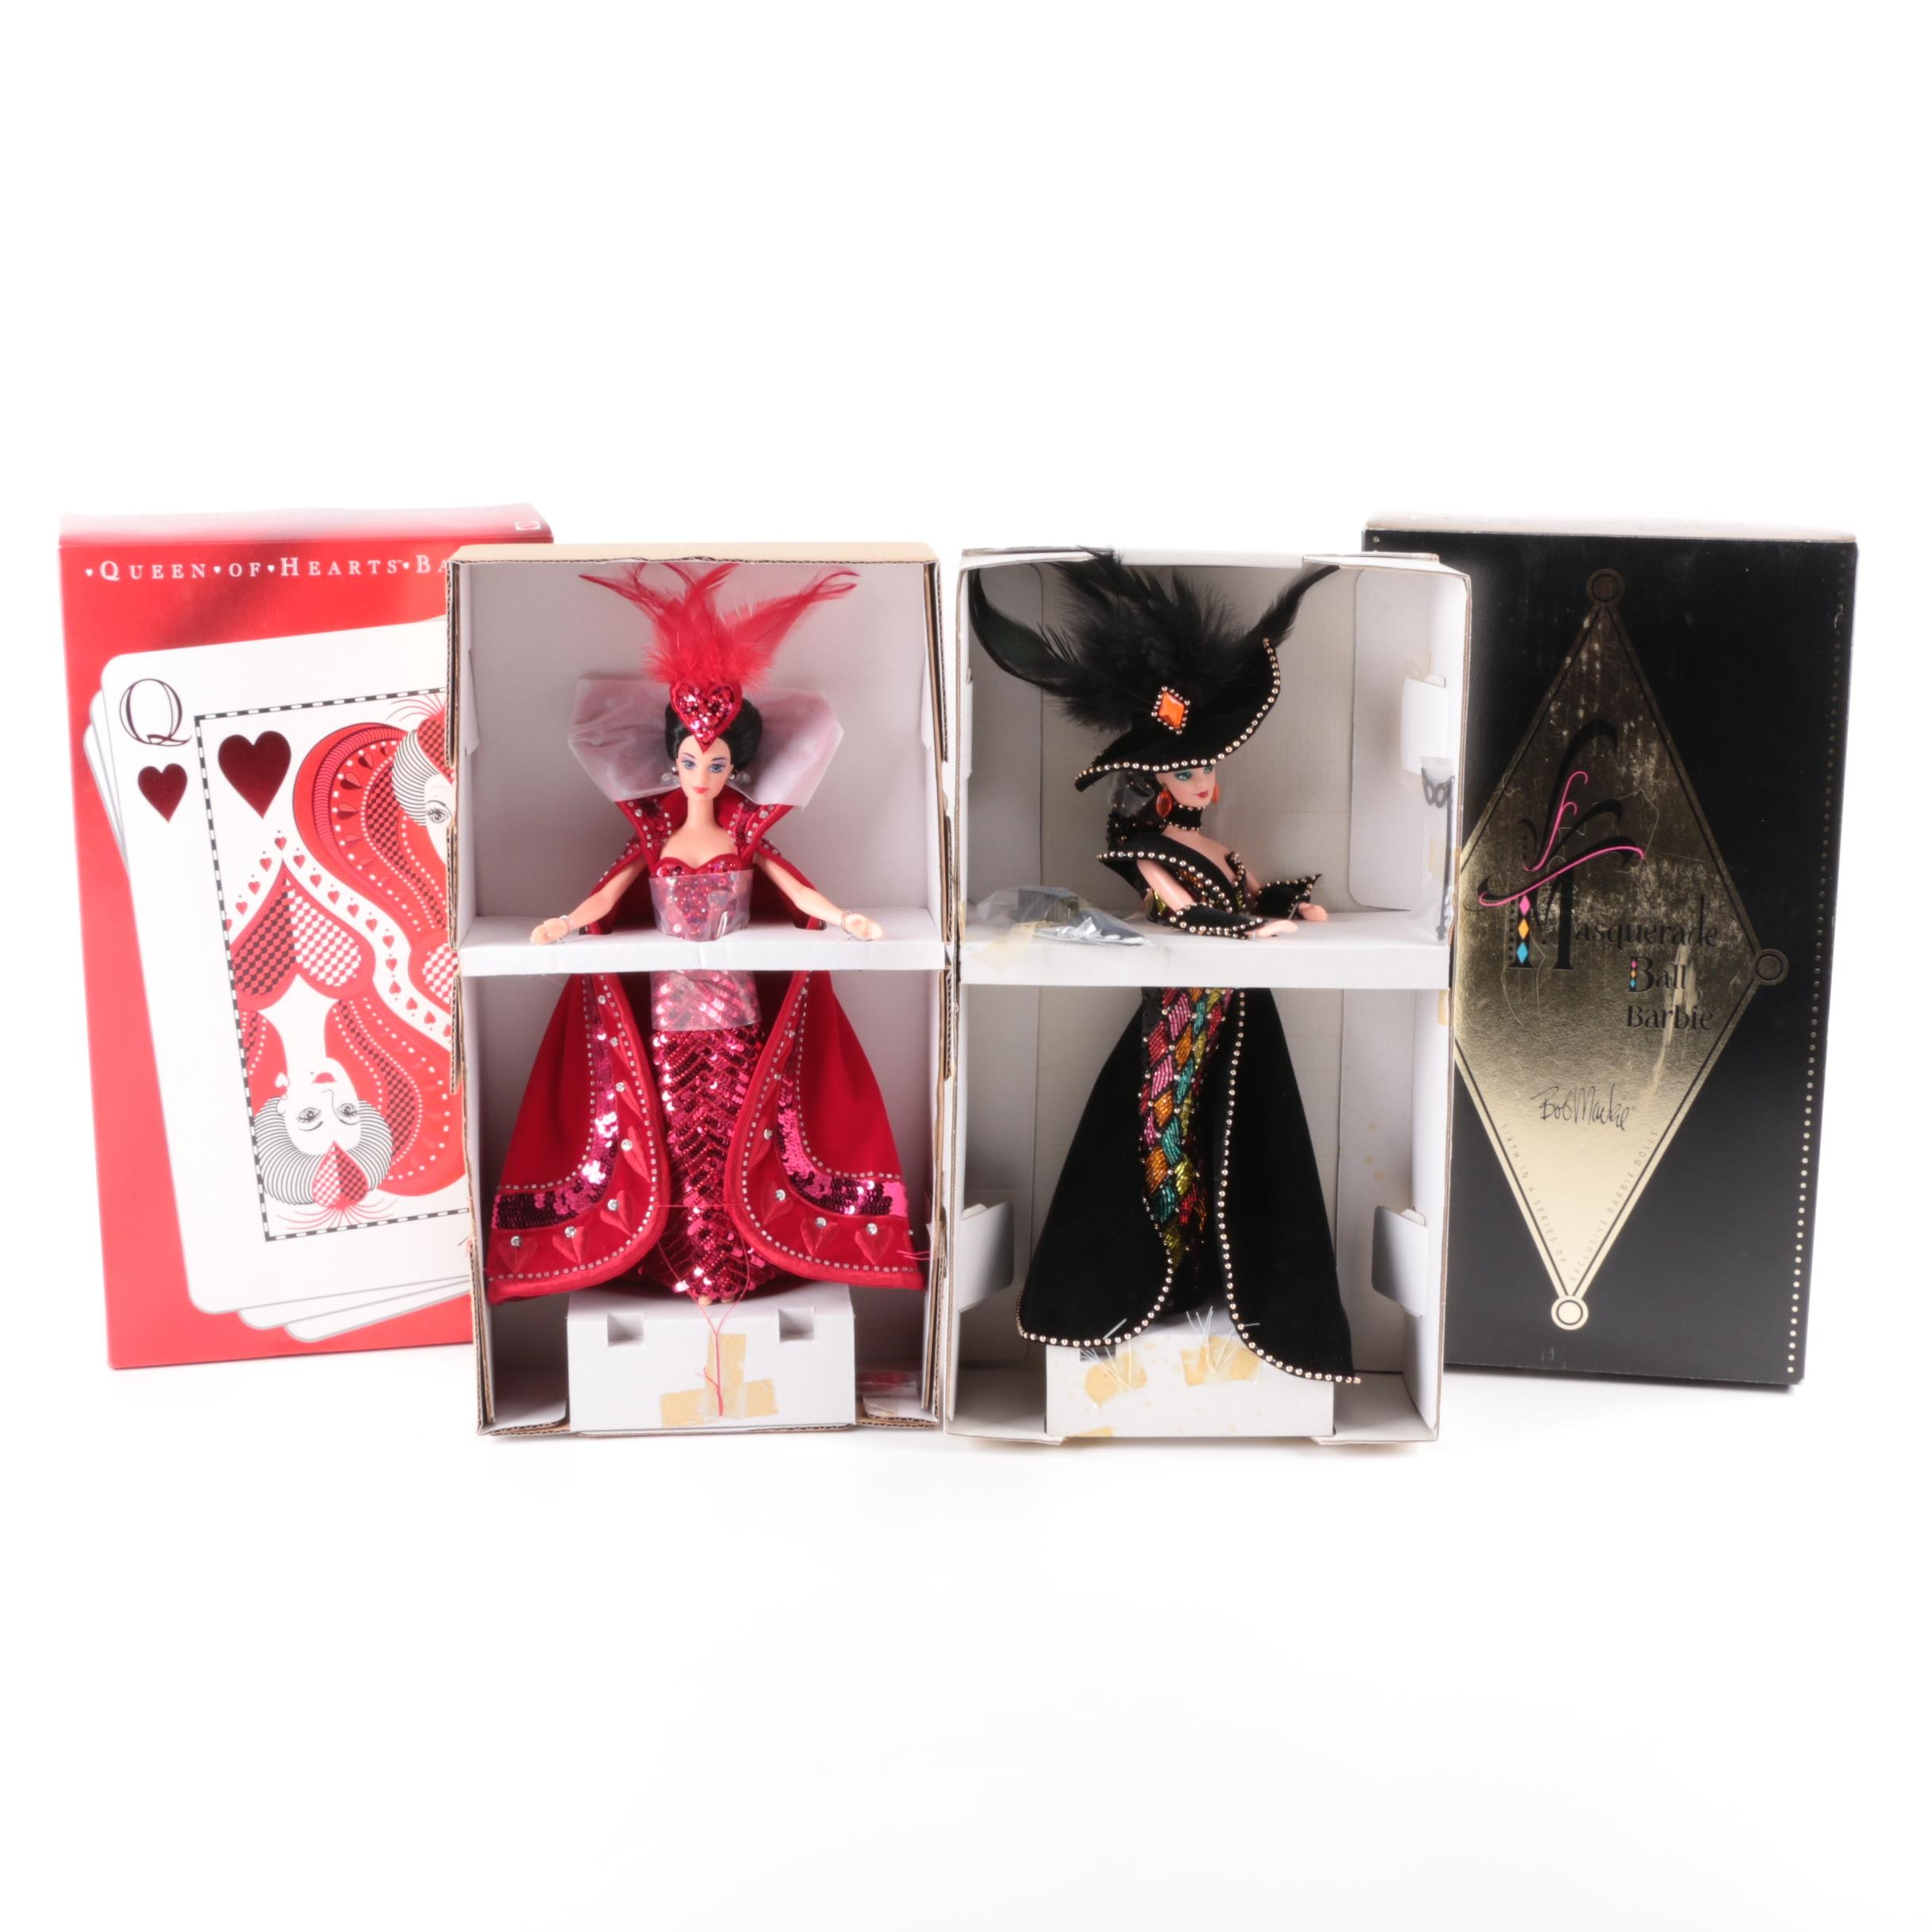 """Mattel """"Queen of Hearts"""" and """"Masquerade Ball"""" Barbie Dolls by Bob Mackie"""